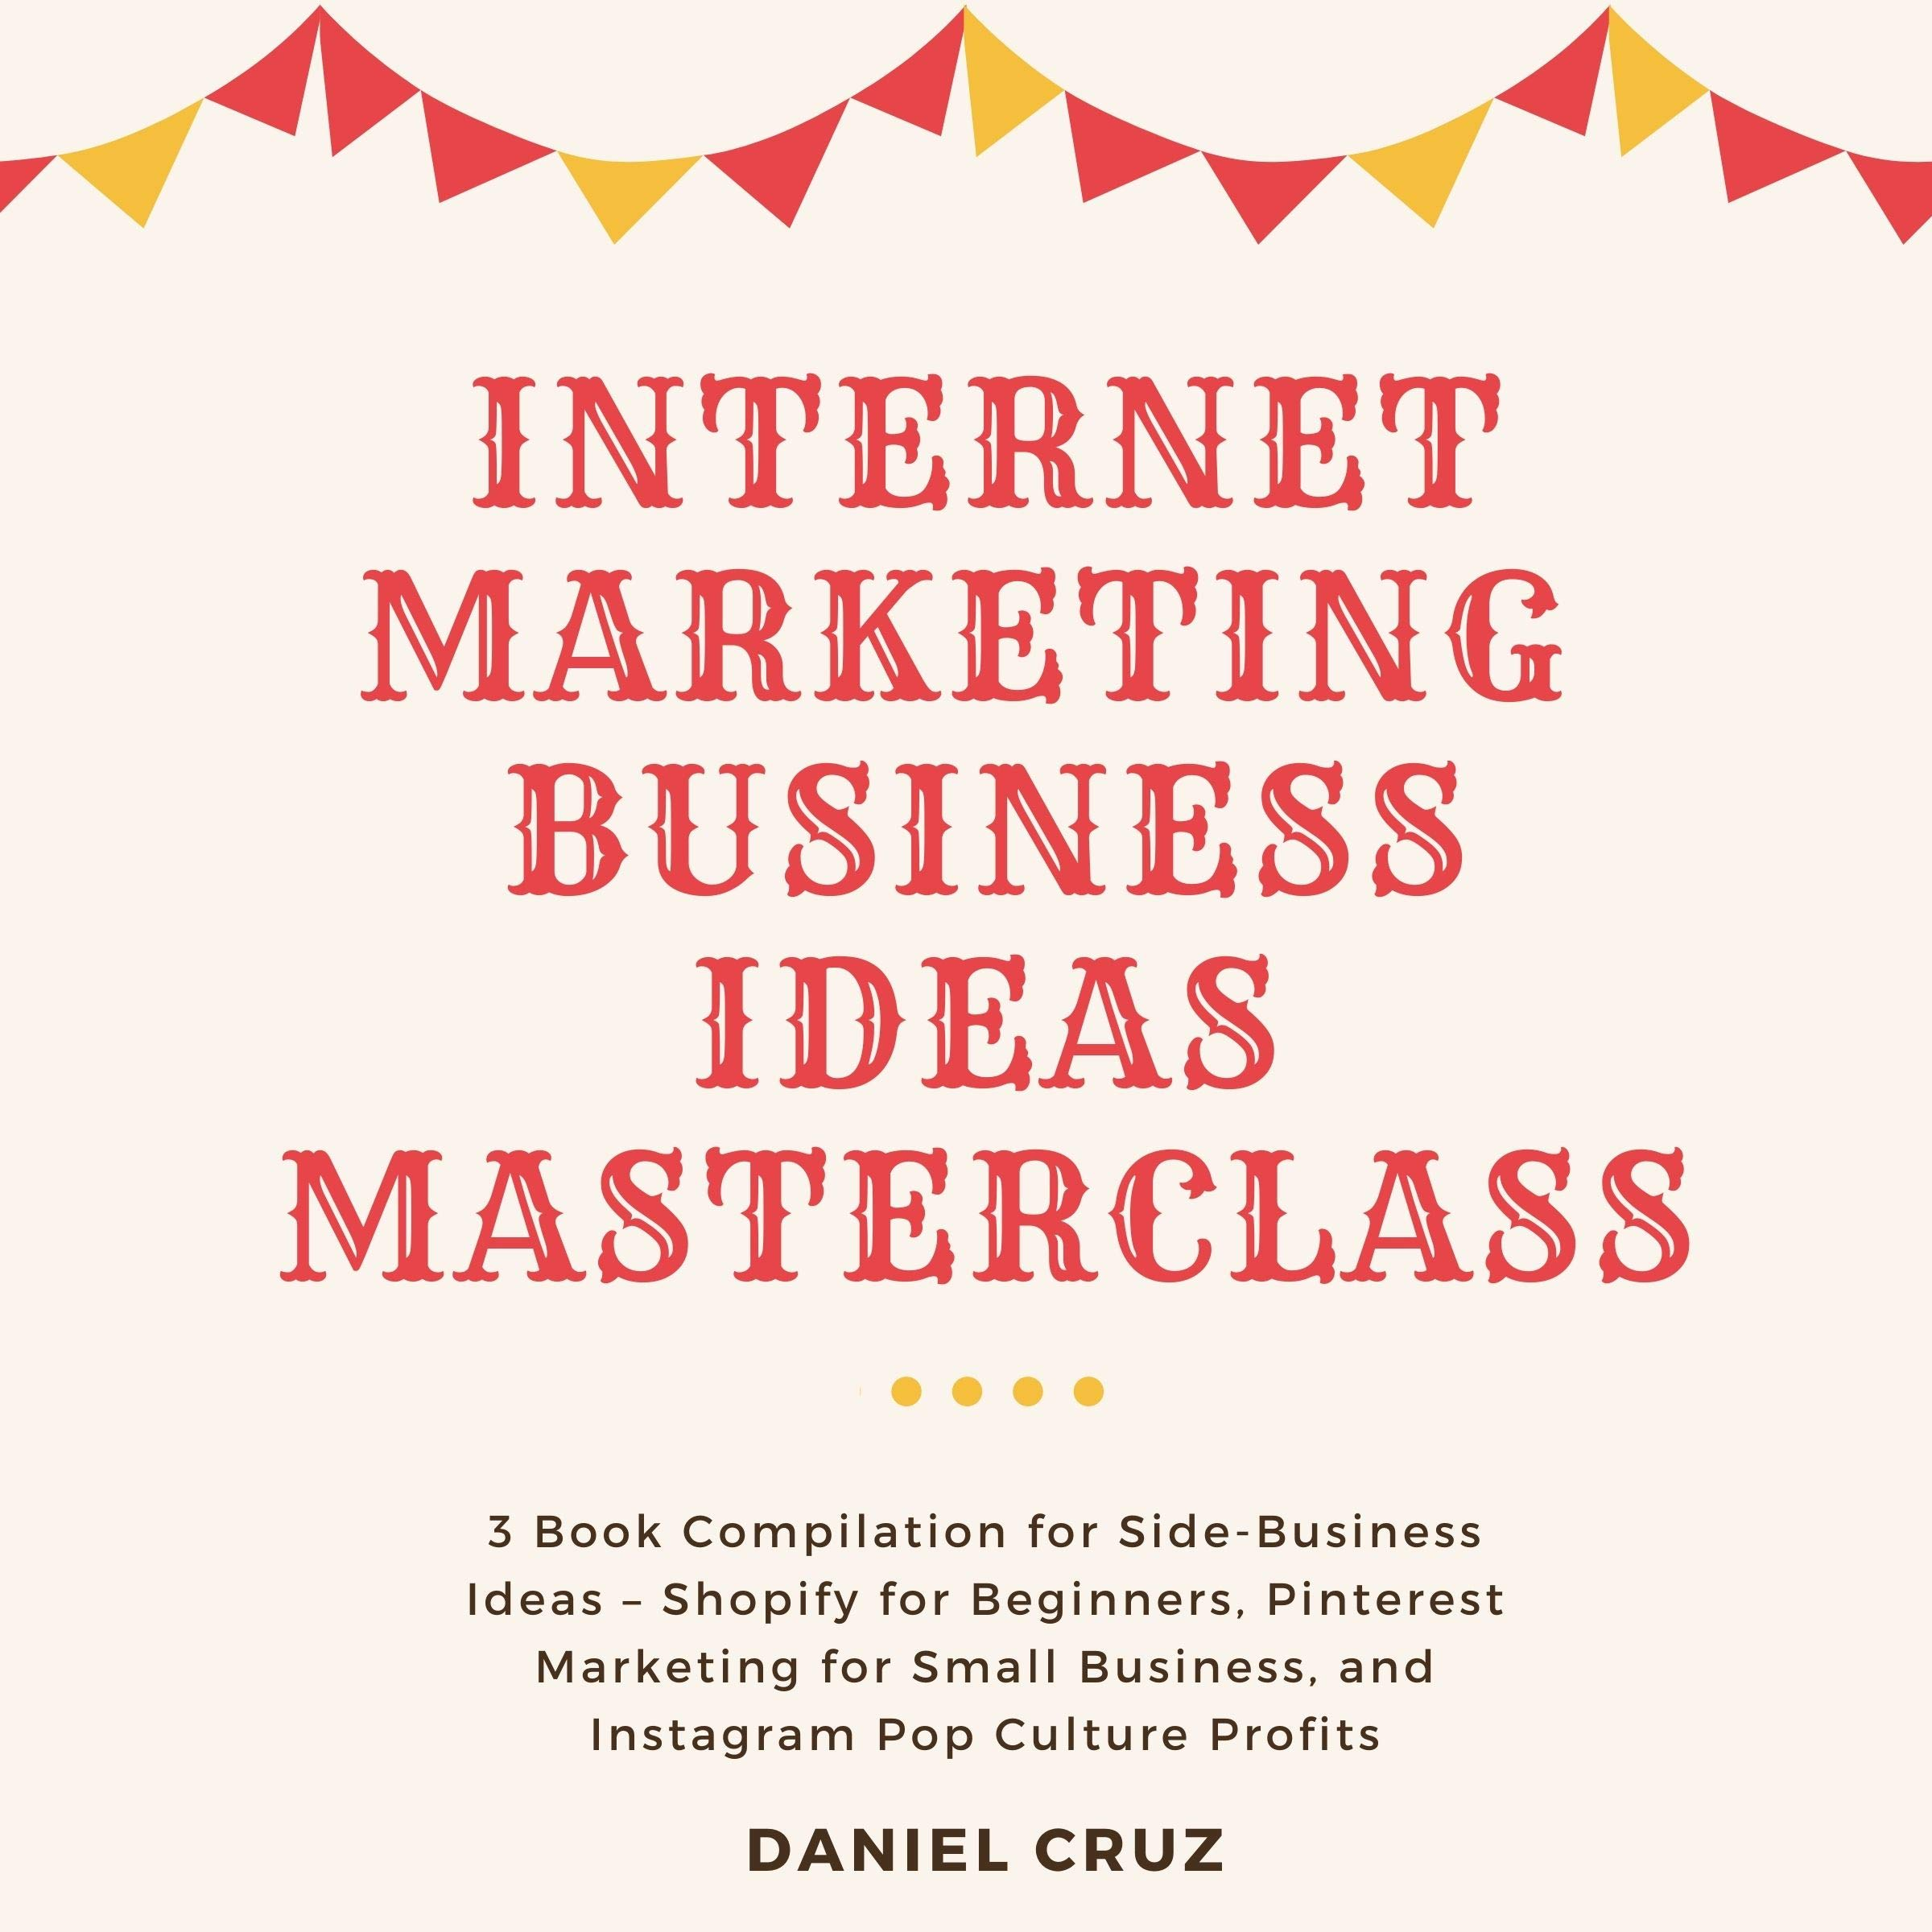 Internet Marketing Business Ideas Masterclass: 3 Book Compilation for Side-Business Ideas – Shopify for Beginners, Pinterest Marketing for Small Business, and Instagram Pop Culture Profits